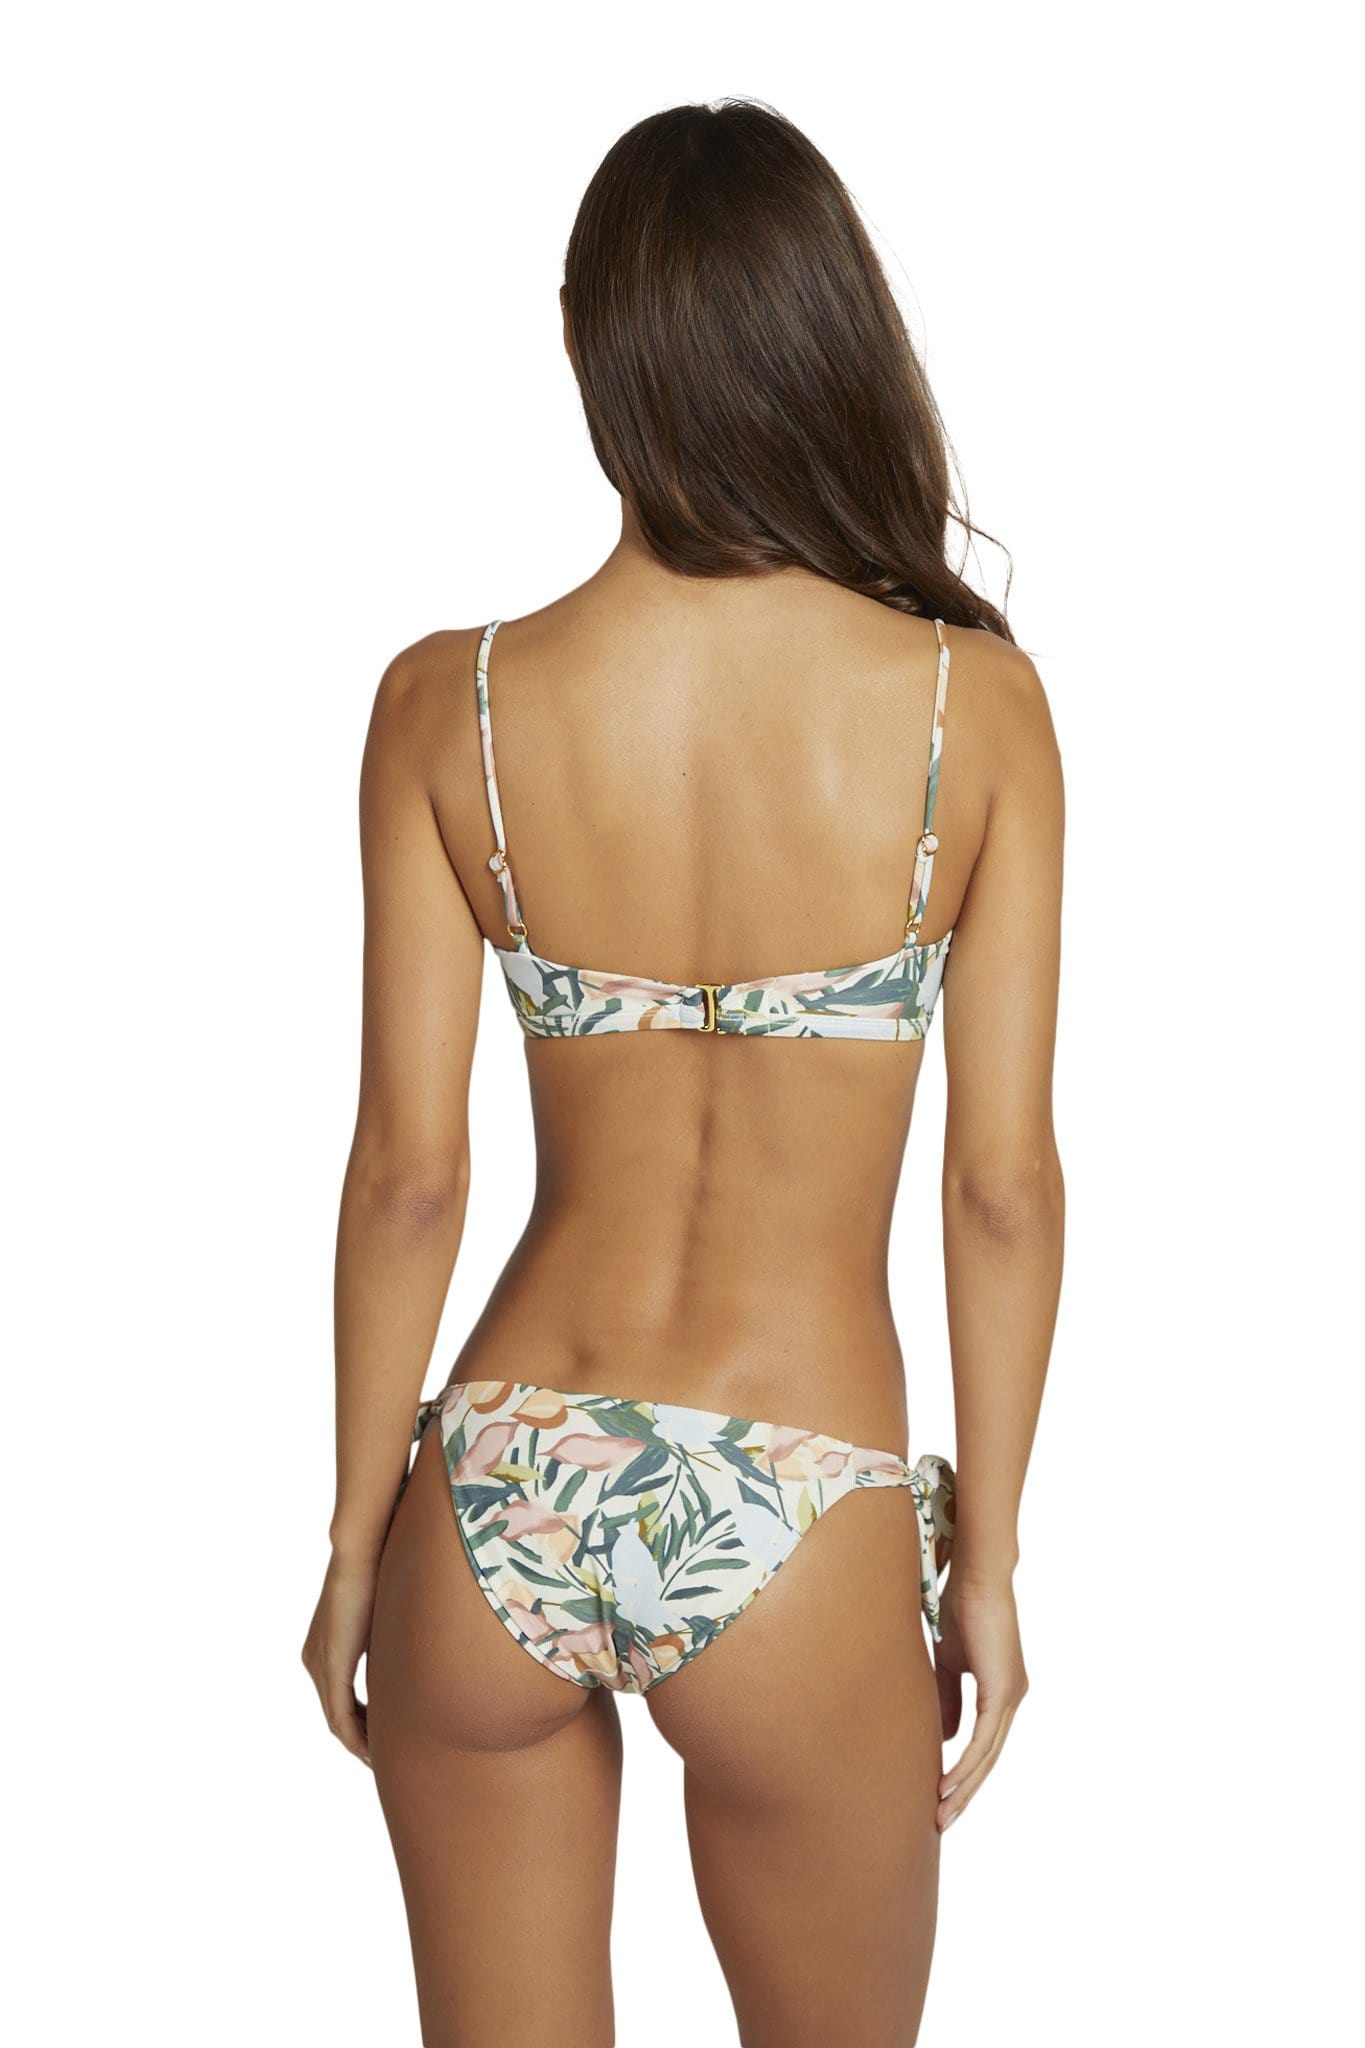 Haleiwa Bottom Vintage Floral